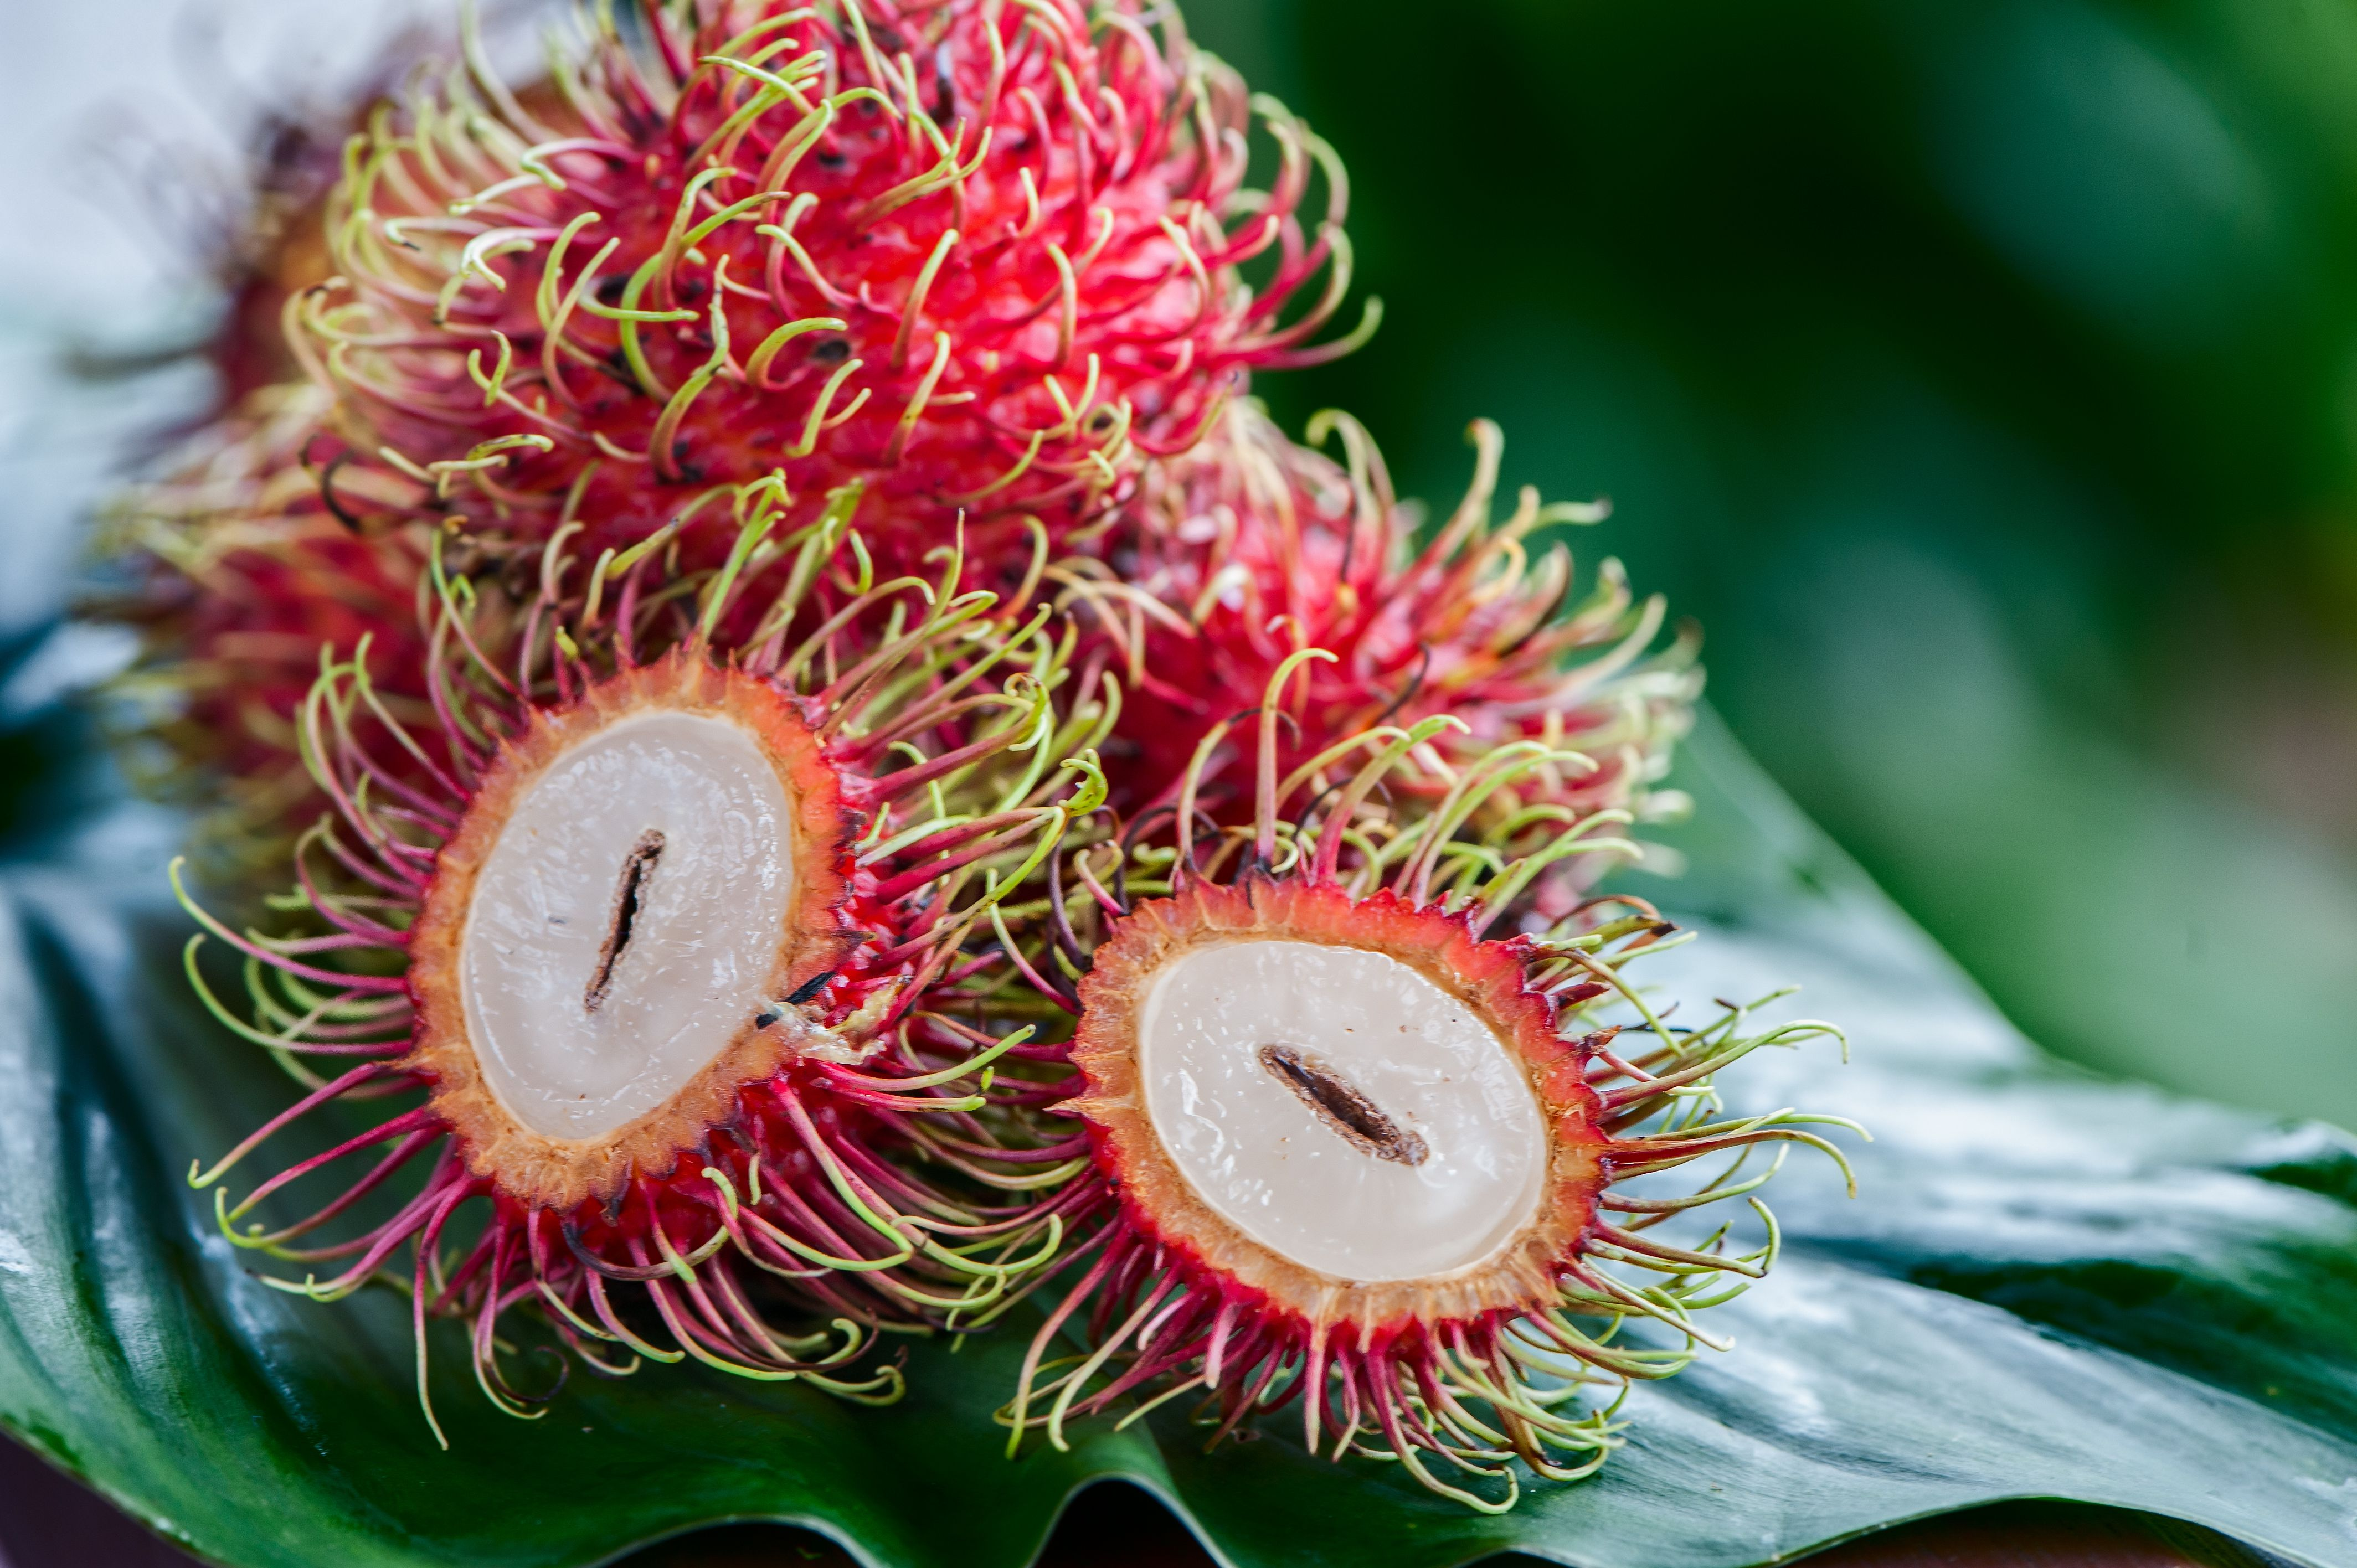 Rambutan in natural conditions on a beautiful tropical background. Exotic fruits